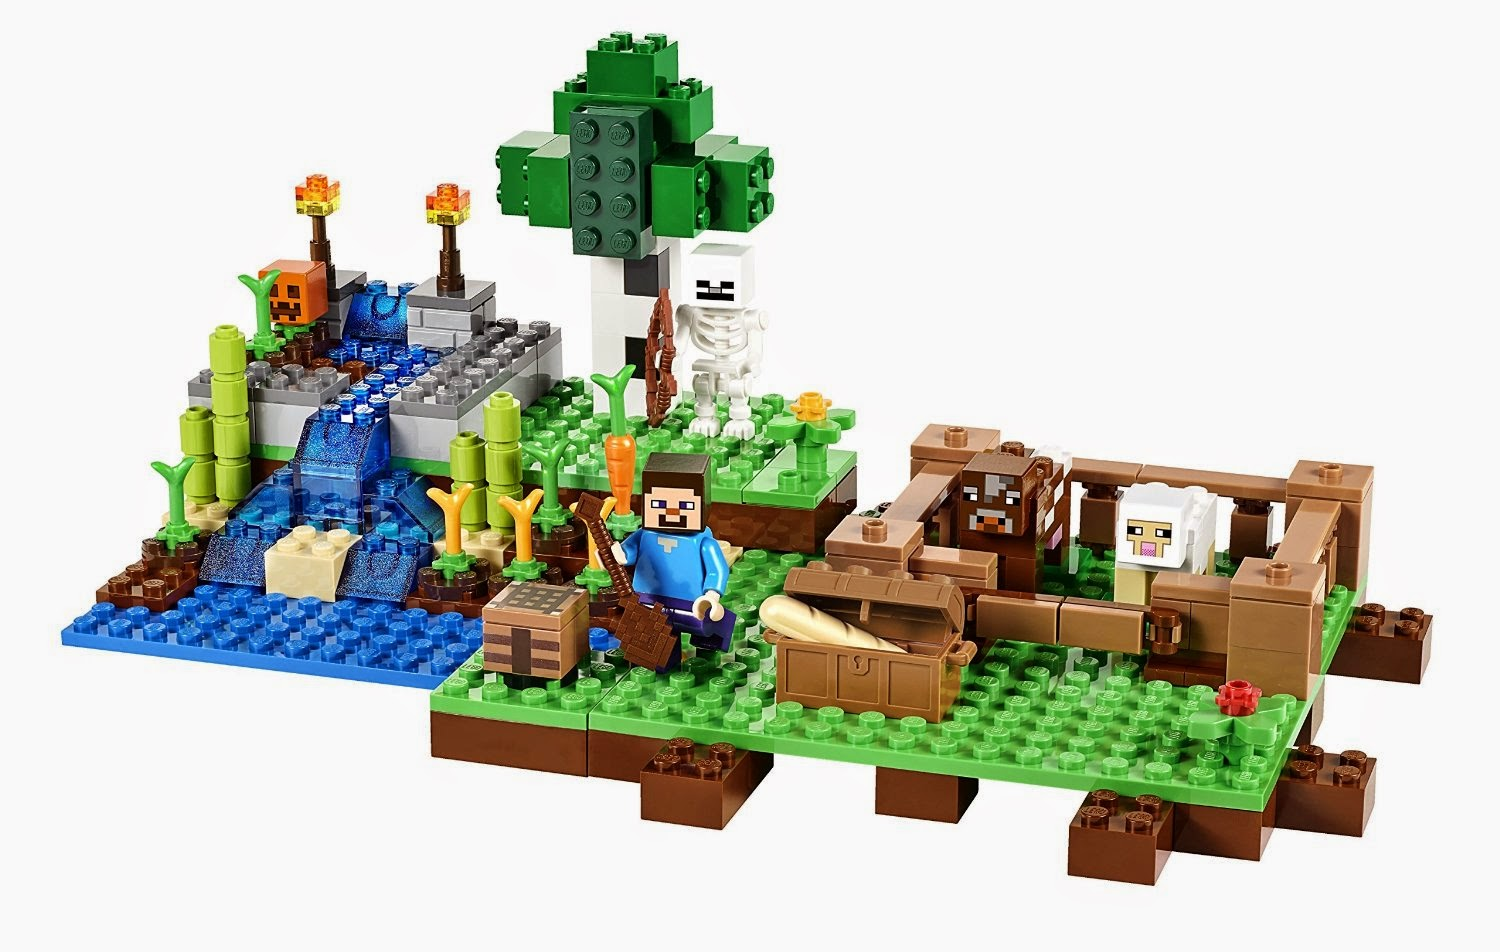 Top Trending Toys For Boys : Latest trending toys for boys and girls lego minecraft